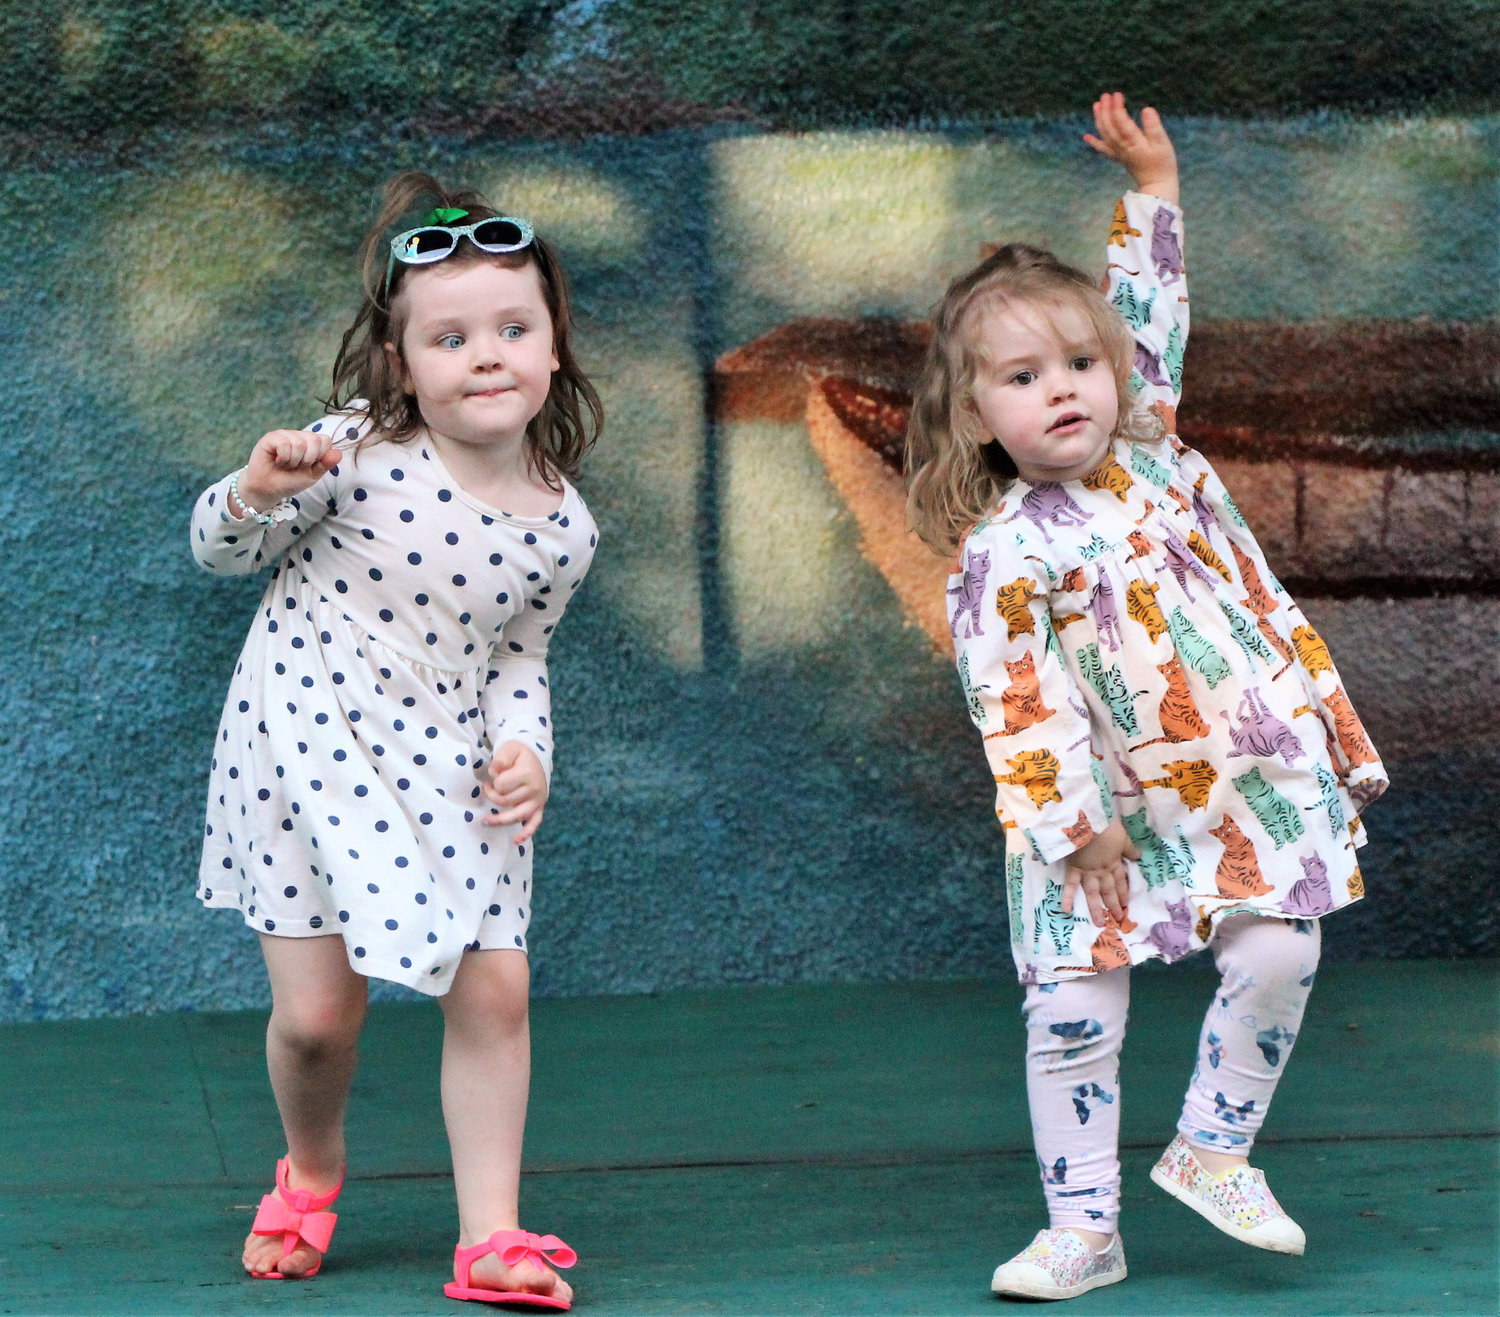 Lucy Cain, 4, left, and her sister Natalie, 2, moved to the disco music at the 1970s-themed fifth birthday party of the Baldwin Community Garden on June 21.